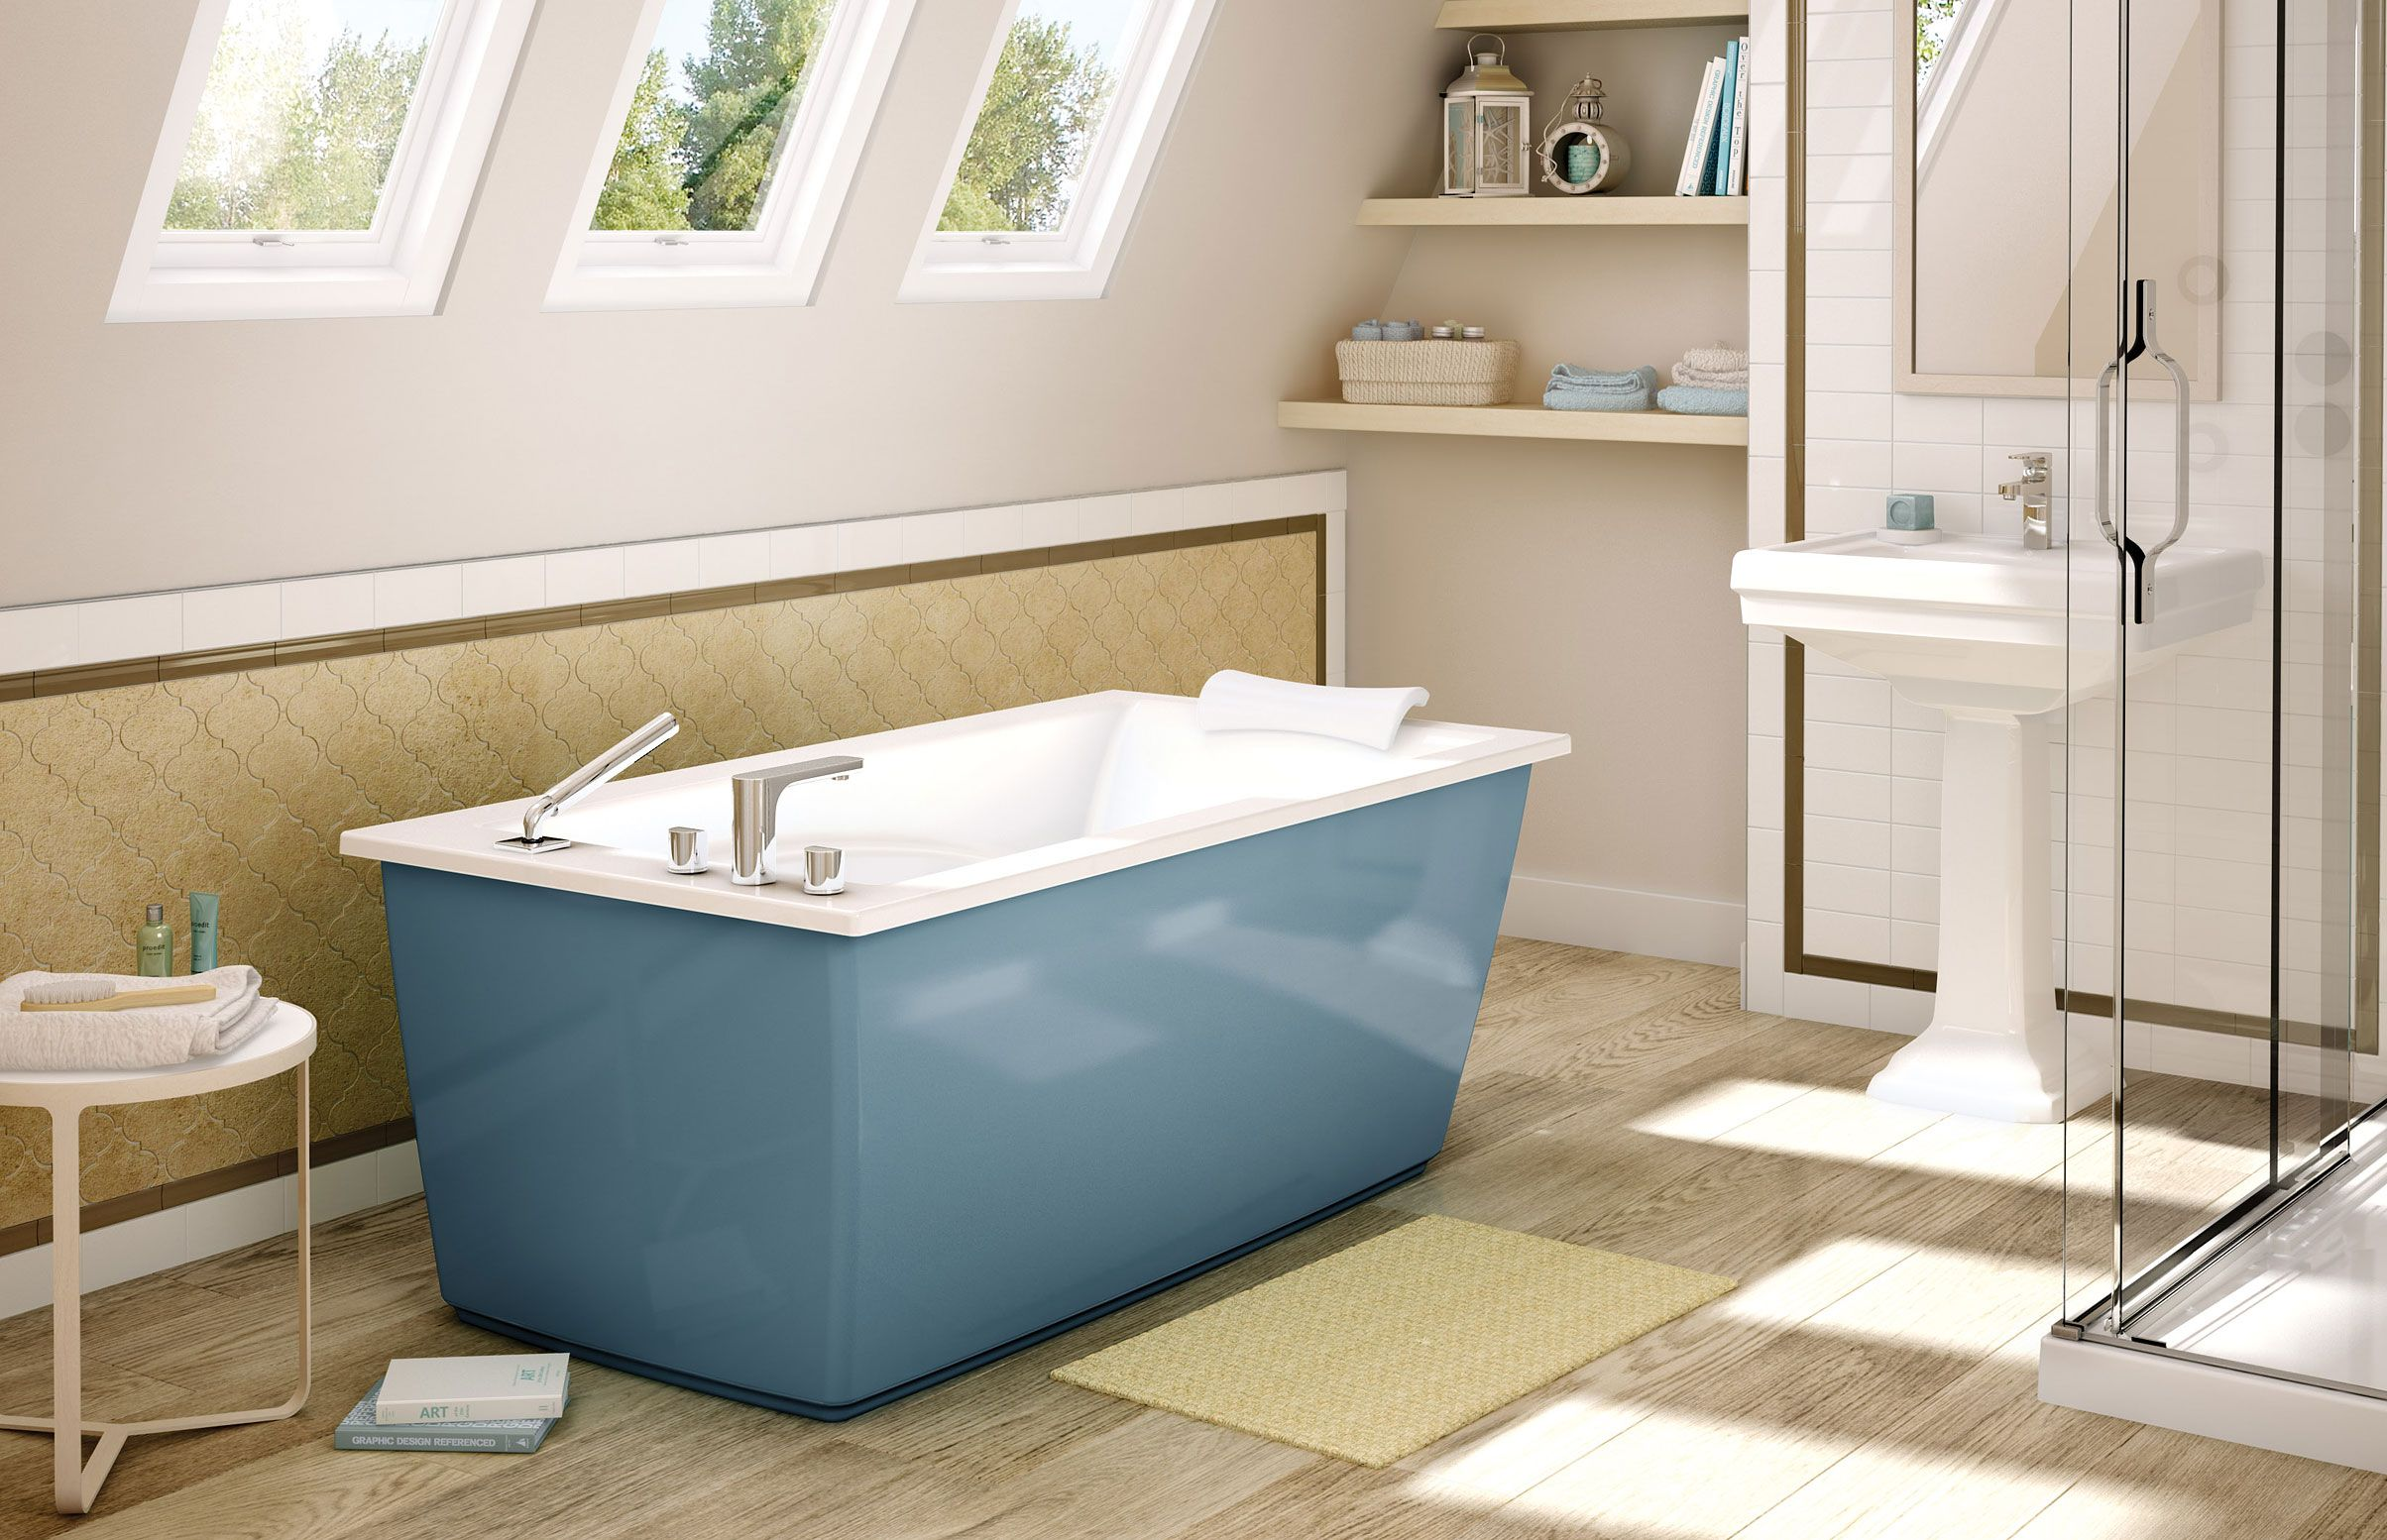 OPTIK 6032 F   Freestanding Bathtub   MAAX Collection